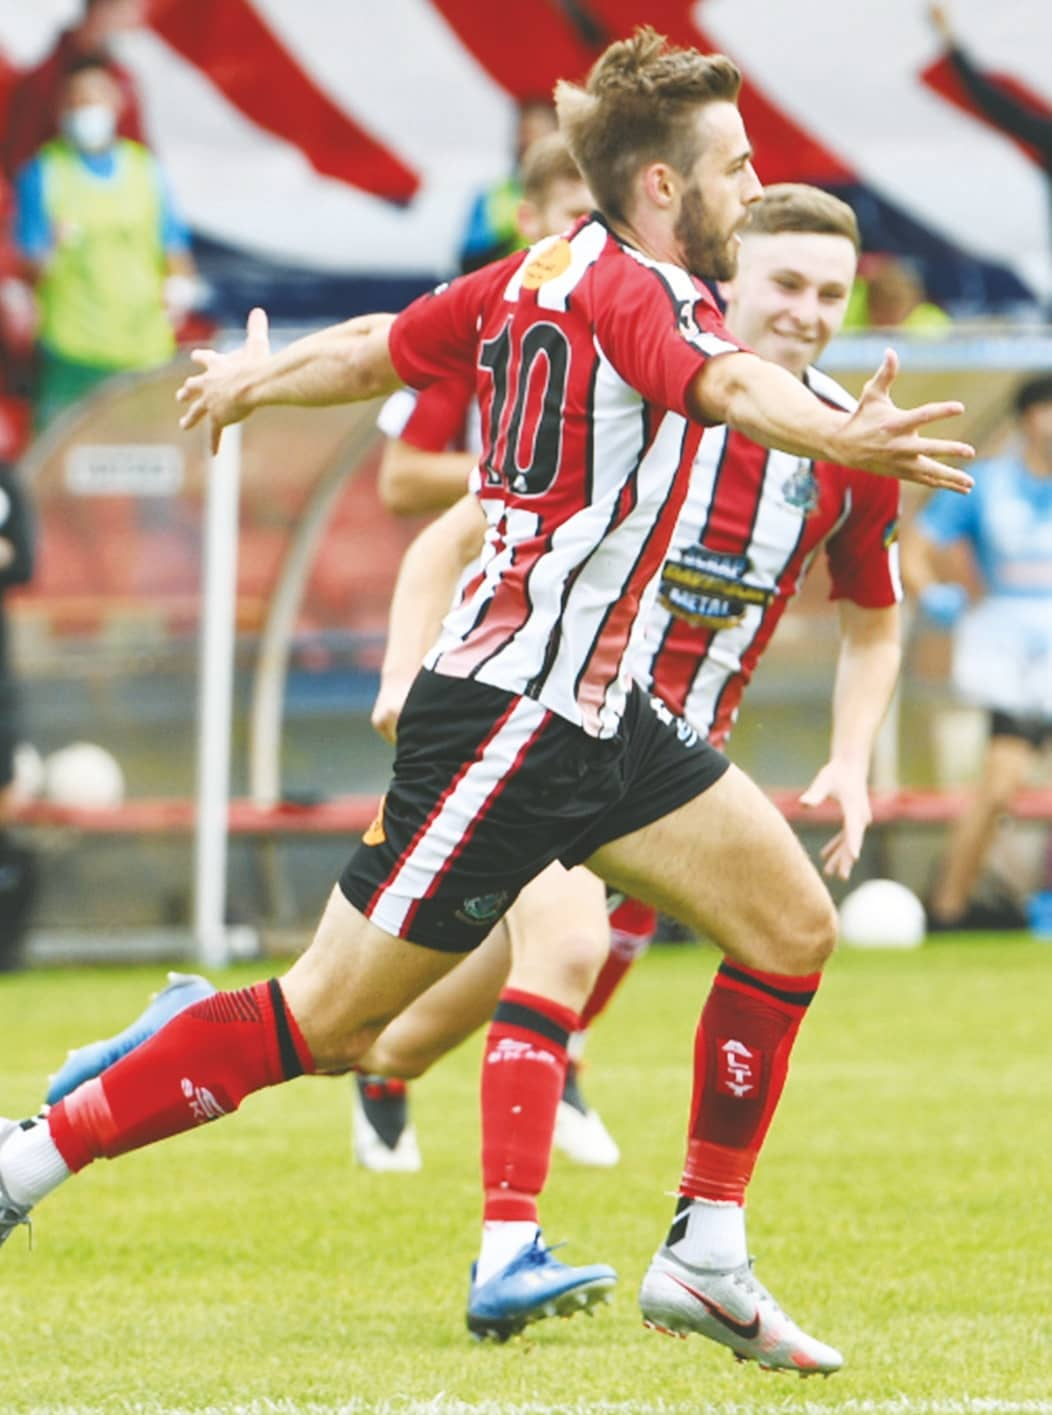 COLOSSAL ROBINS GIVE YORK THE BOOT